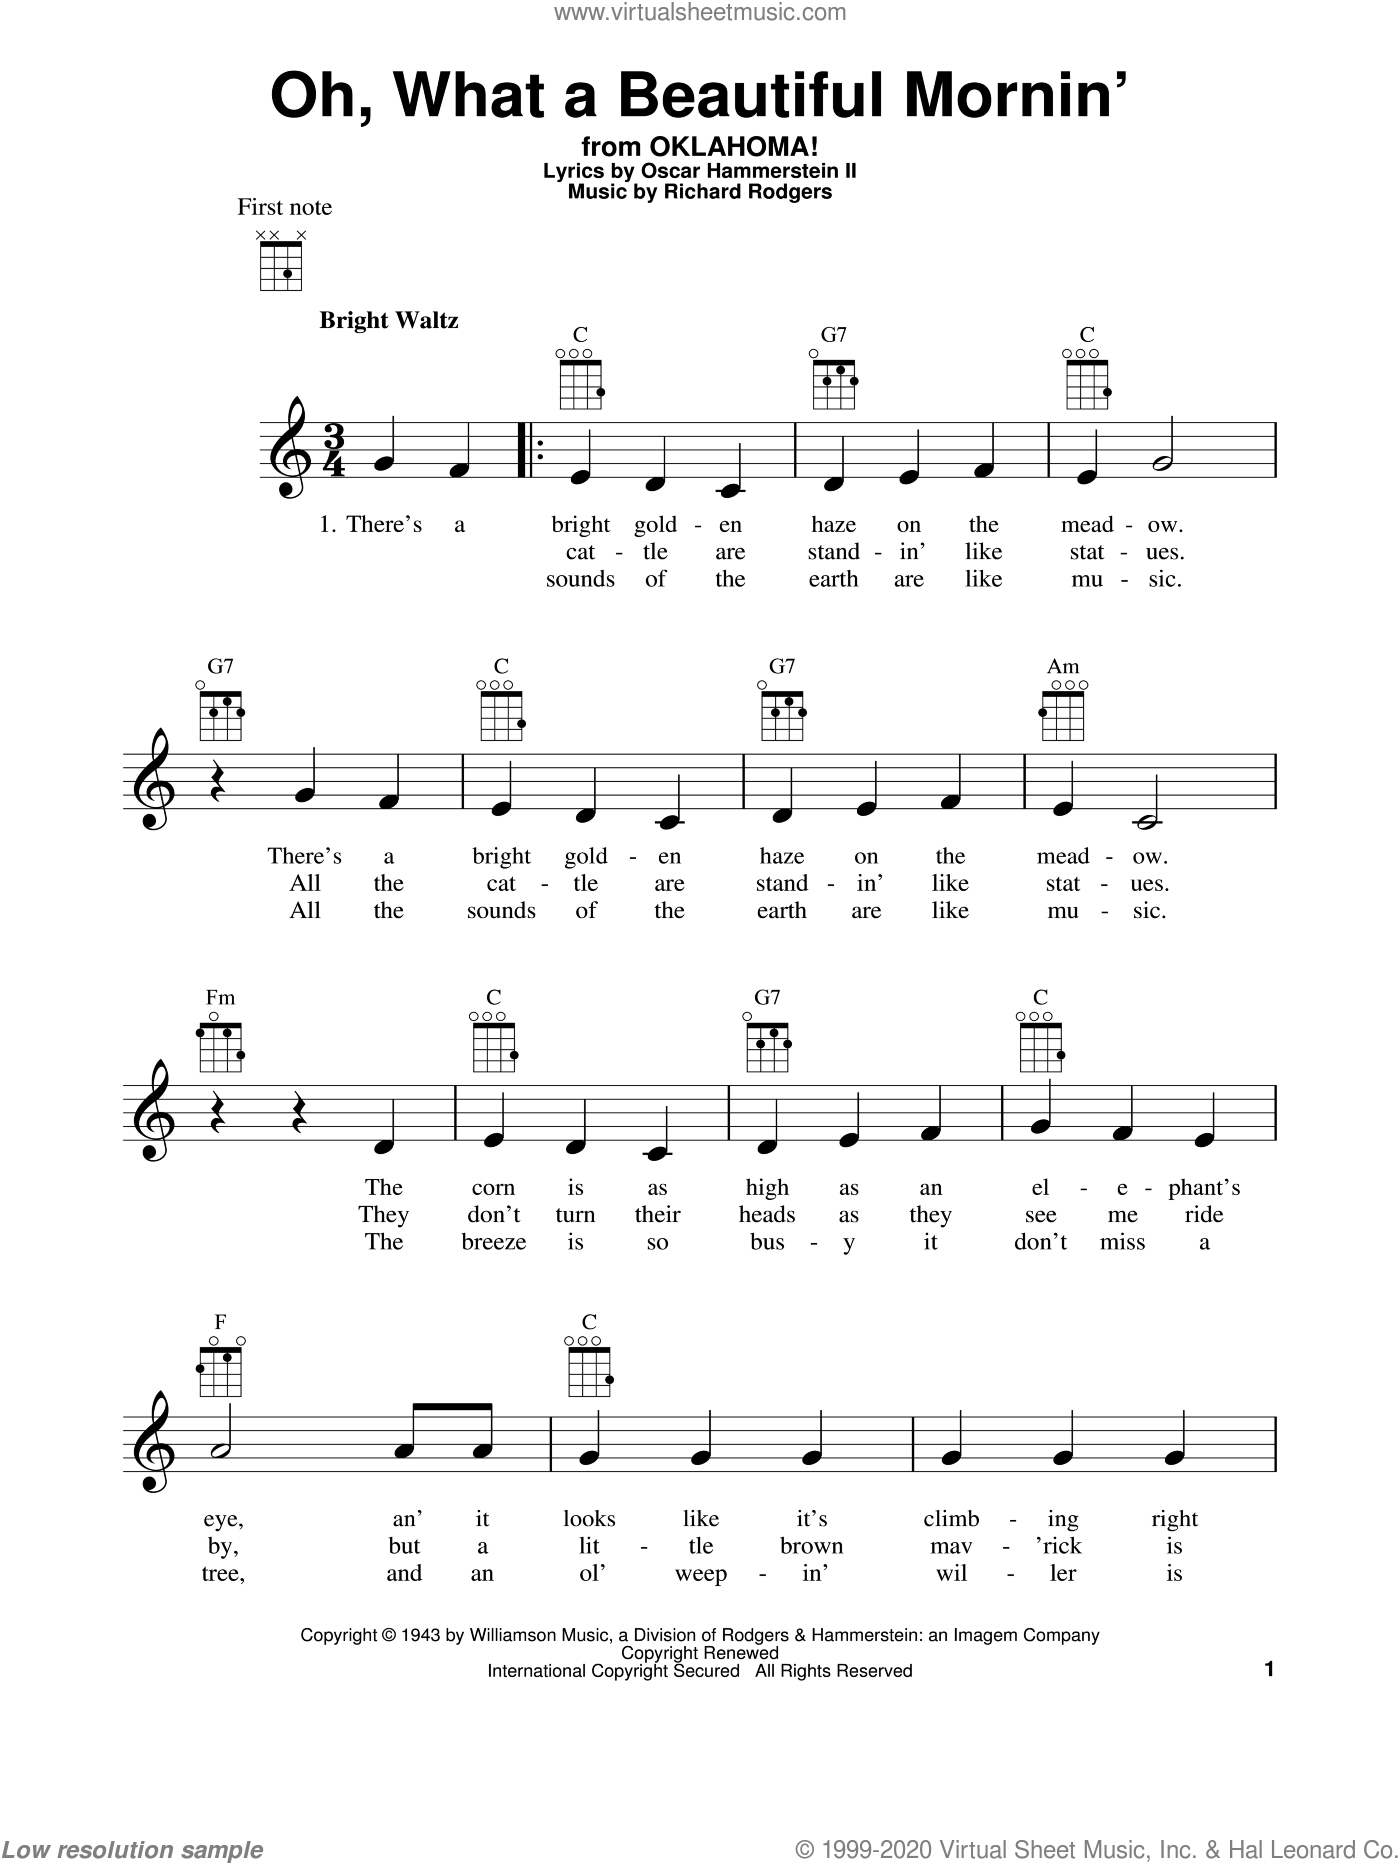 Oh, What A Beautiful Mornin' (from Oklahoma!) sheet music for ukulele by Rodgers & Hammerstein, Oklahoma! (Musical), Oscar II Hammerstein and Richard Rodgers, intermediate skill level